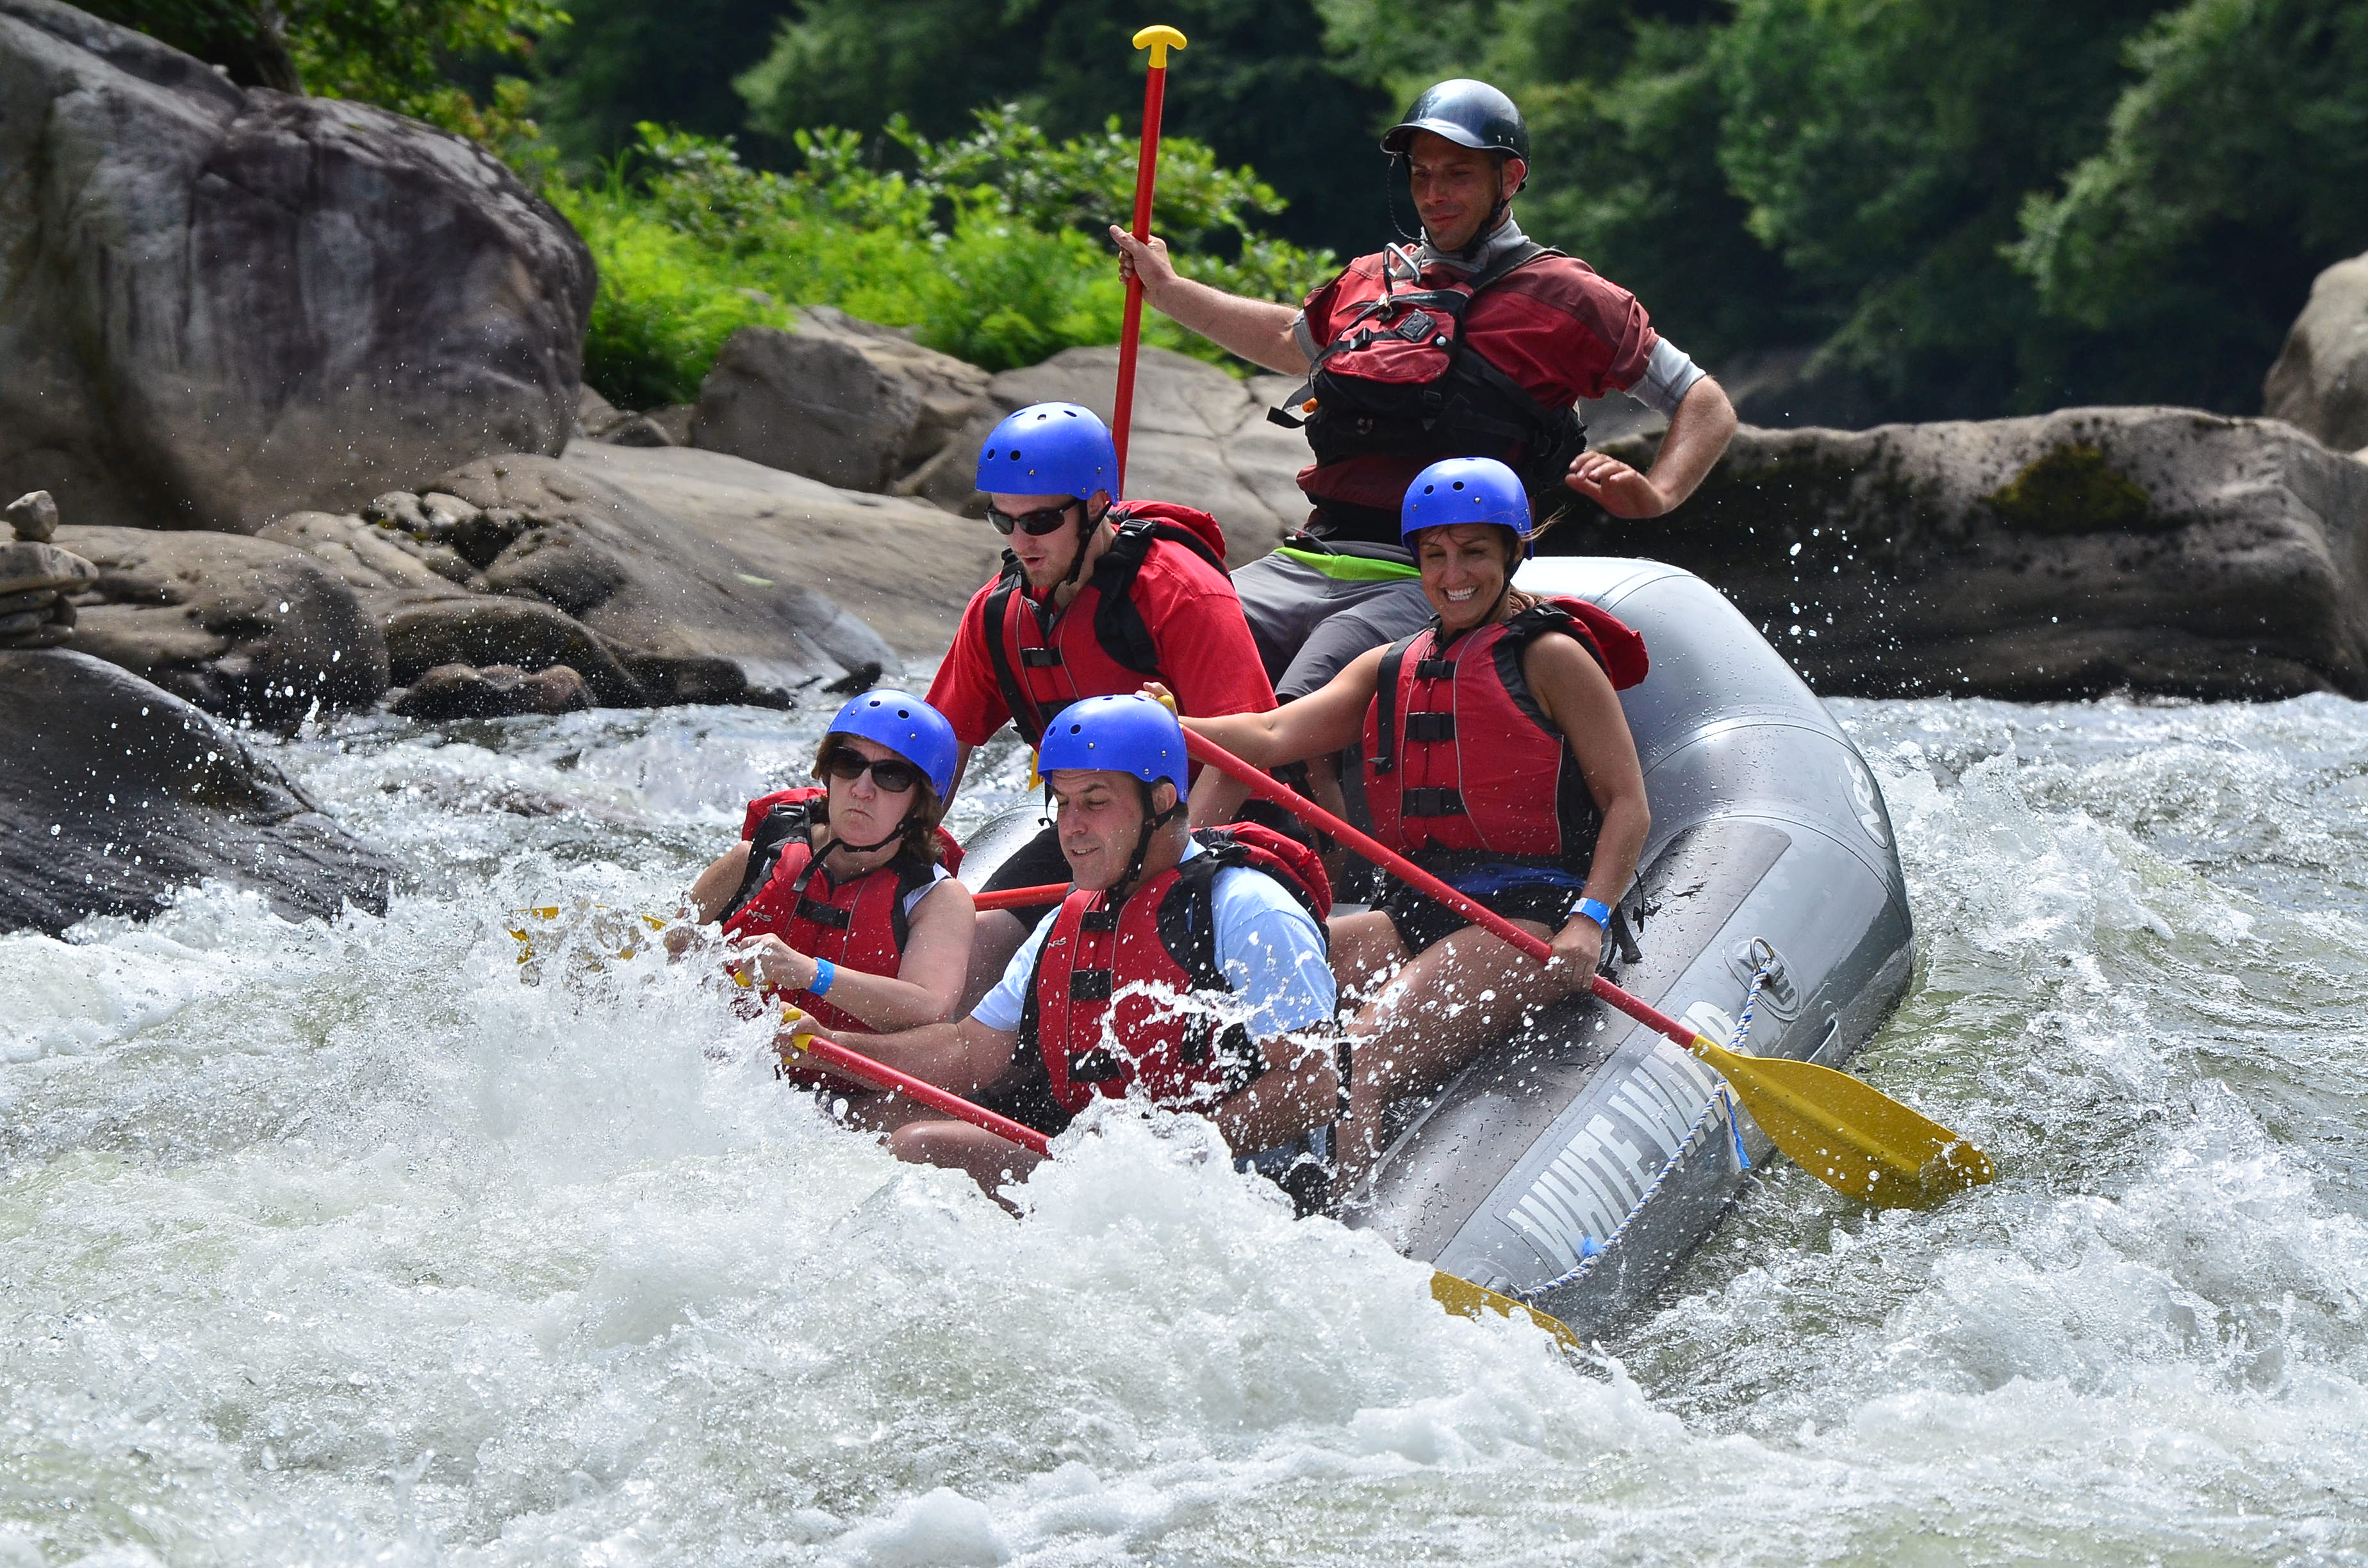 Pictures of topless river rafting